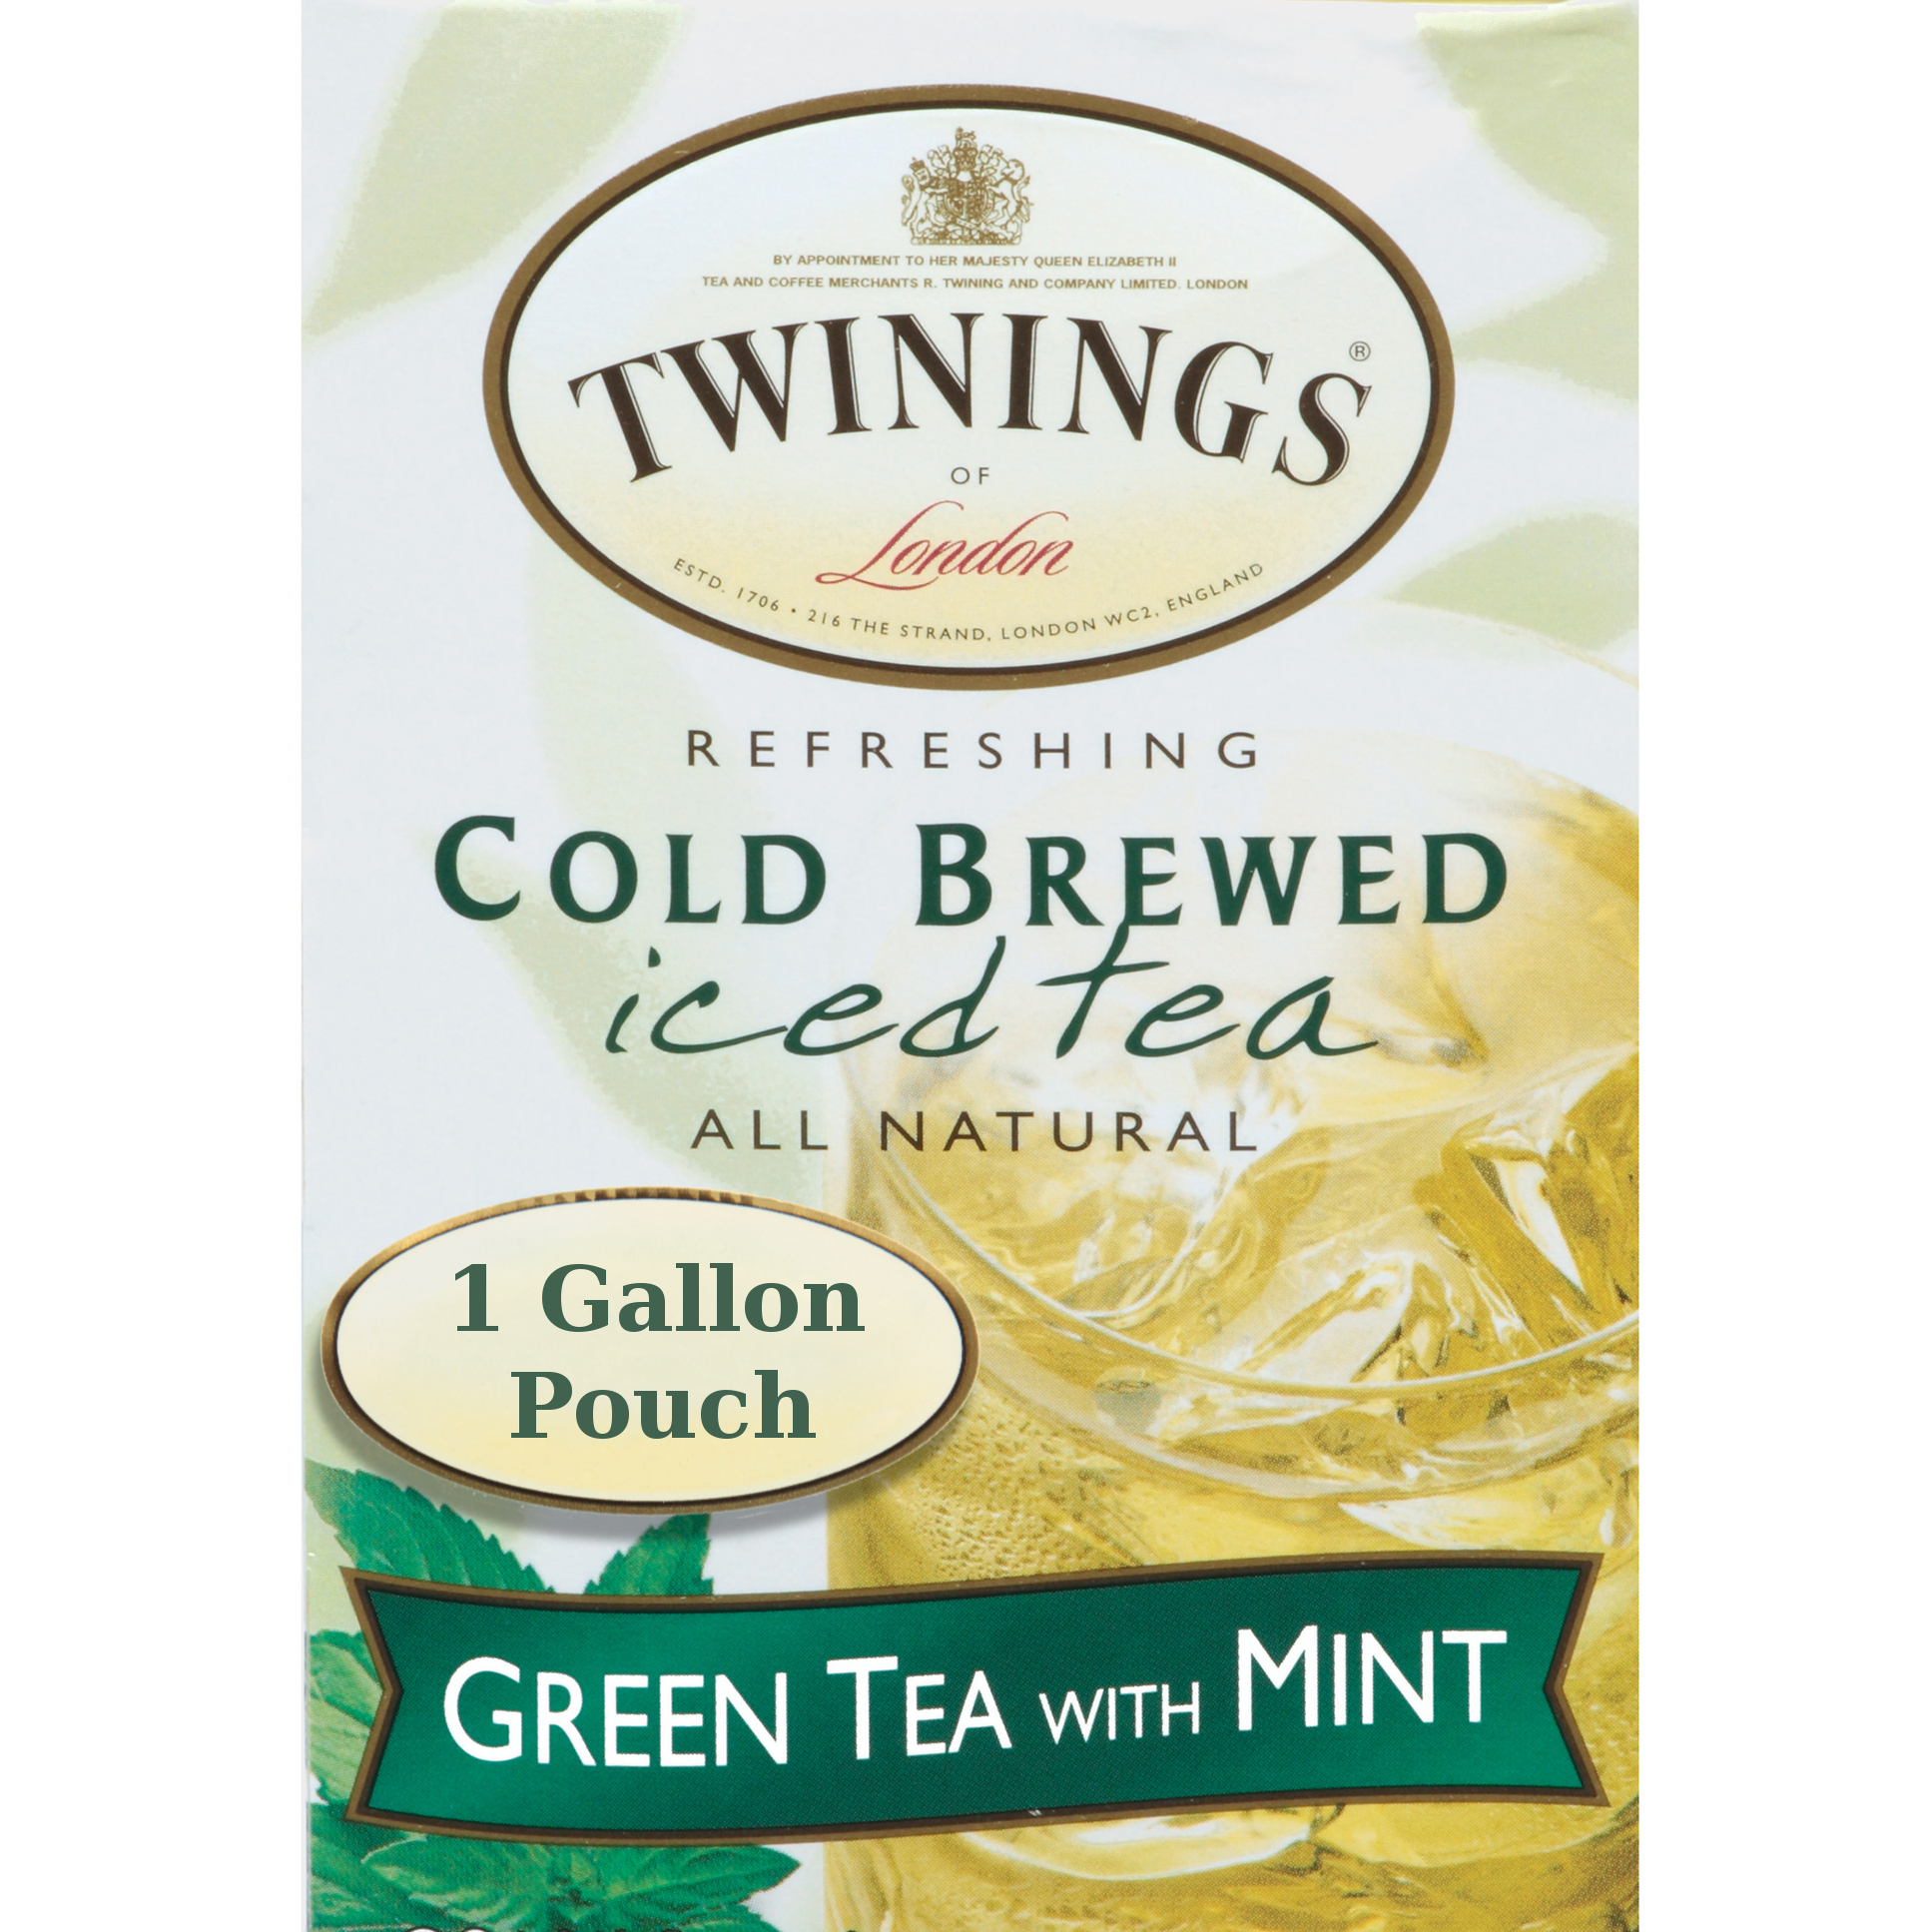 Twinings Iced Tea Beverage Dispenser with 24 Green Tea with Mint Cold Brew Iced Tea Bags